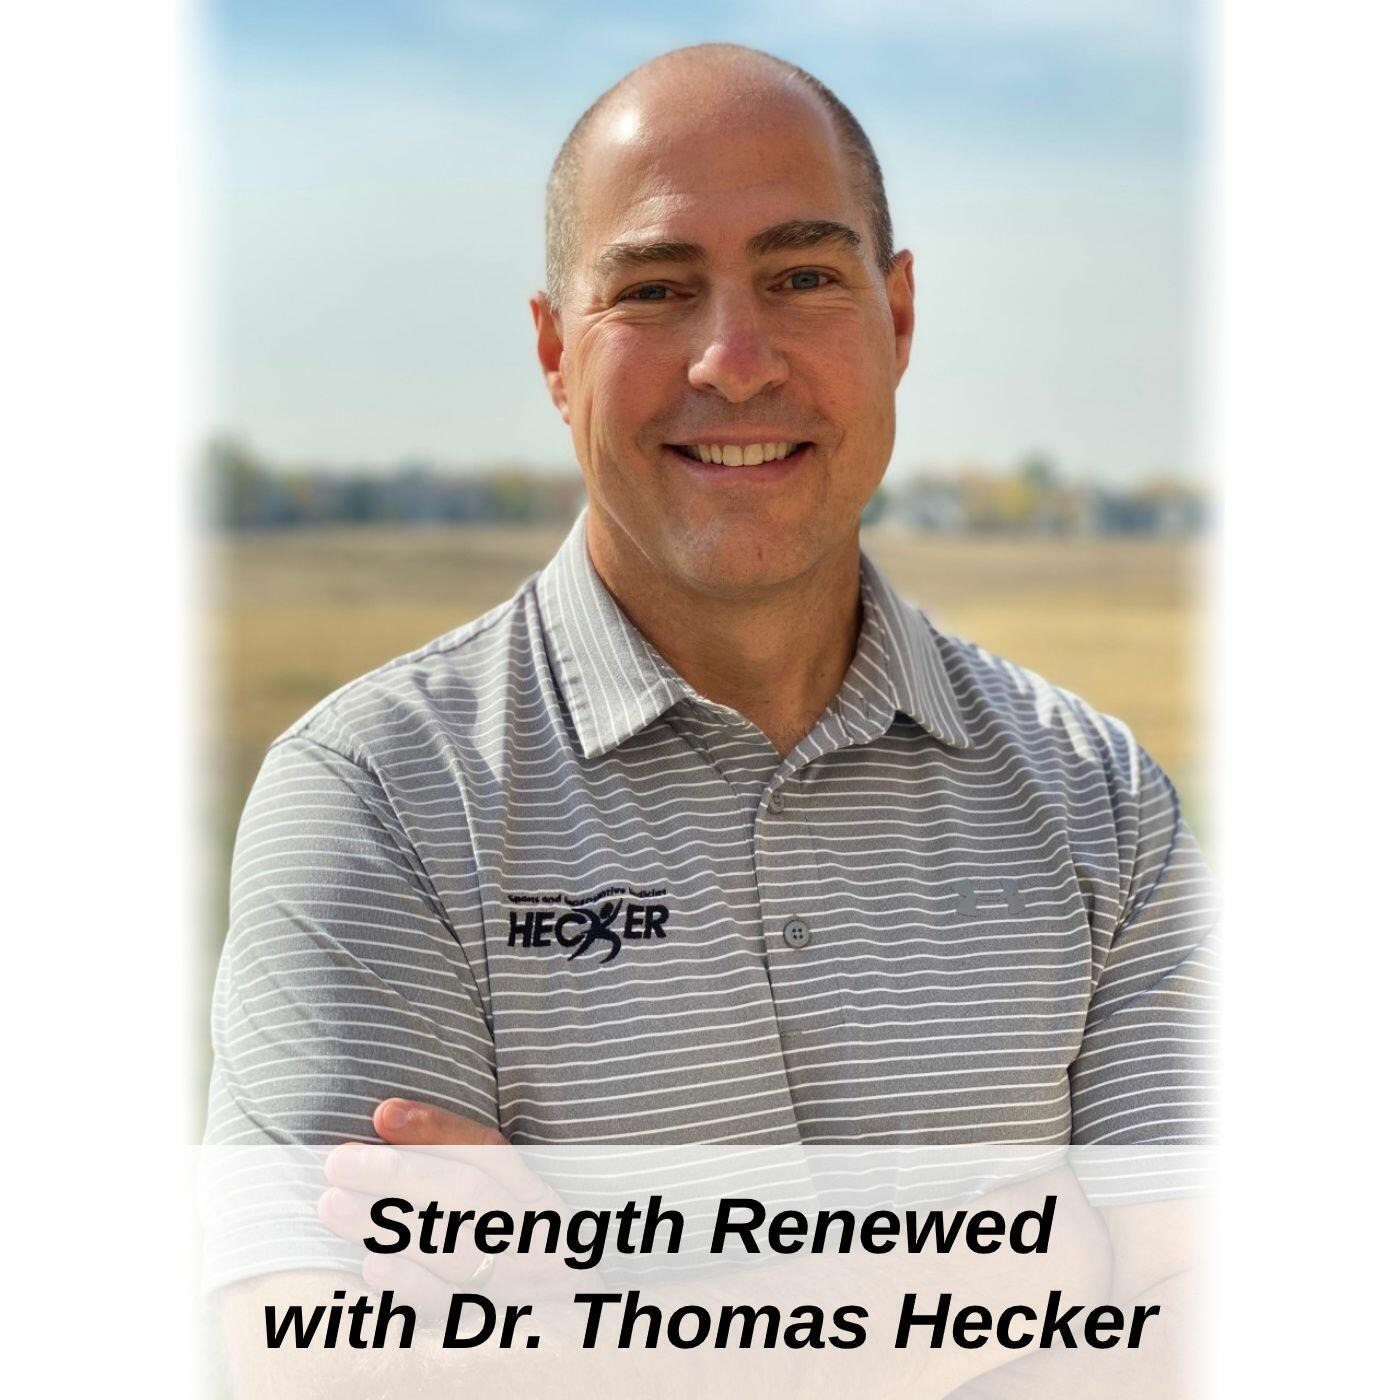 Strength Renewed with Dr. Thomas Hecker